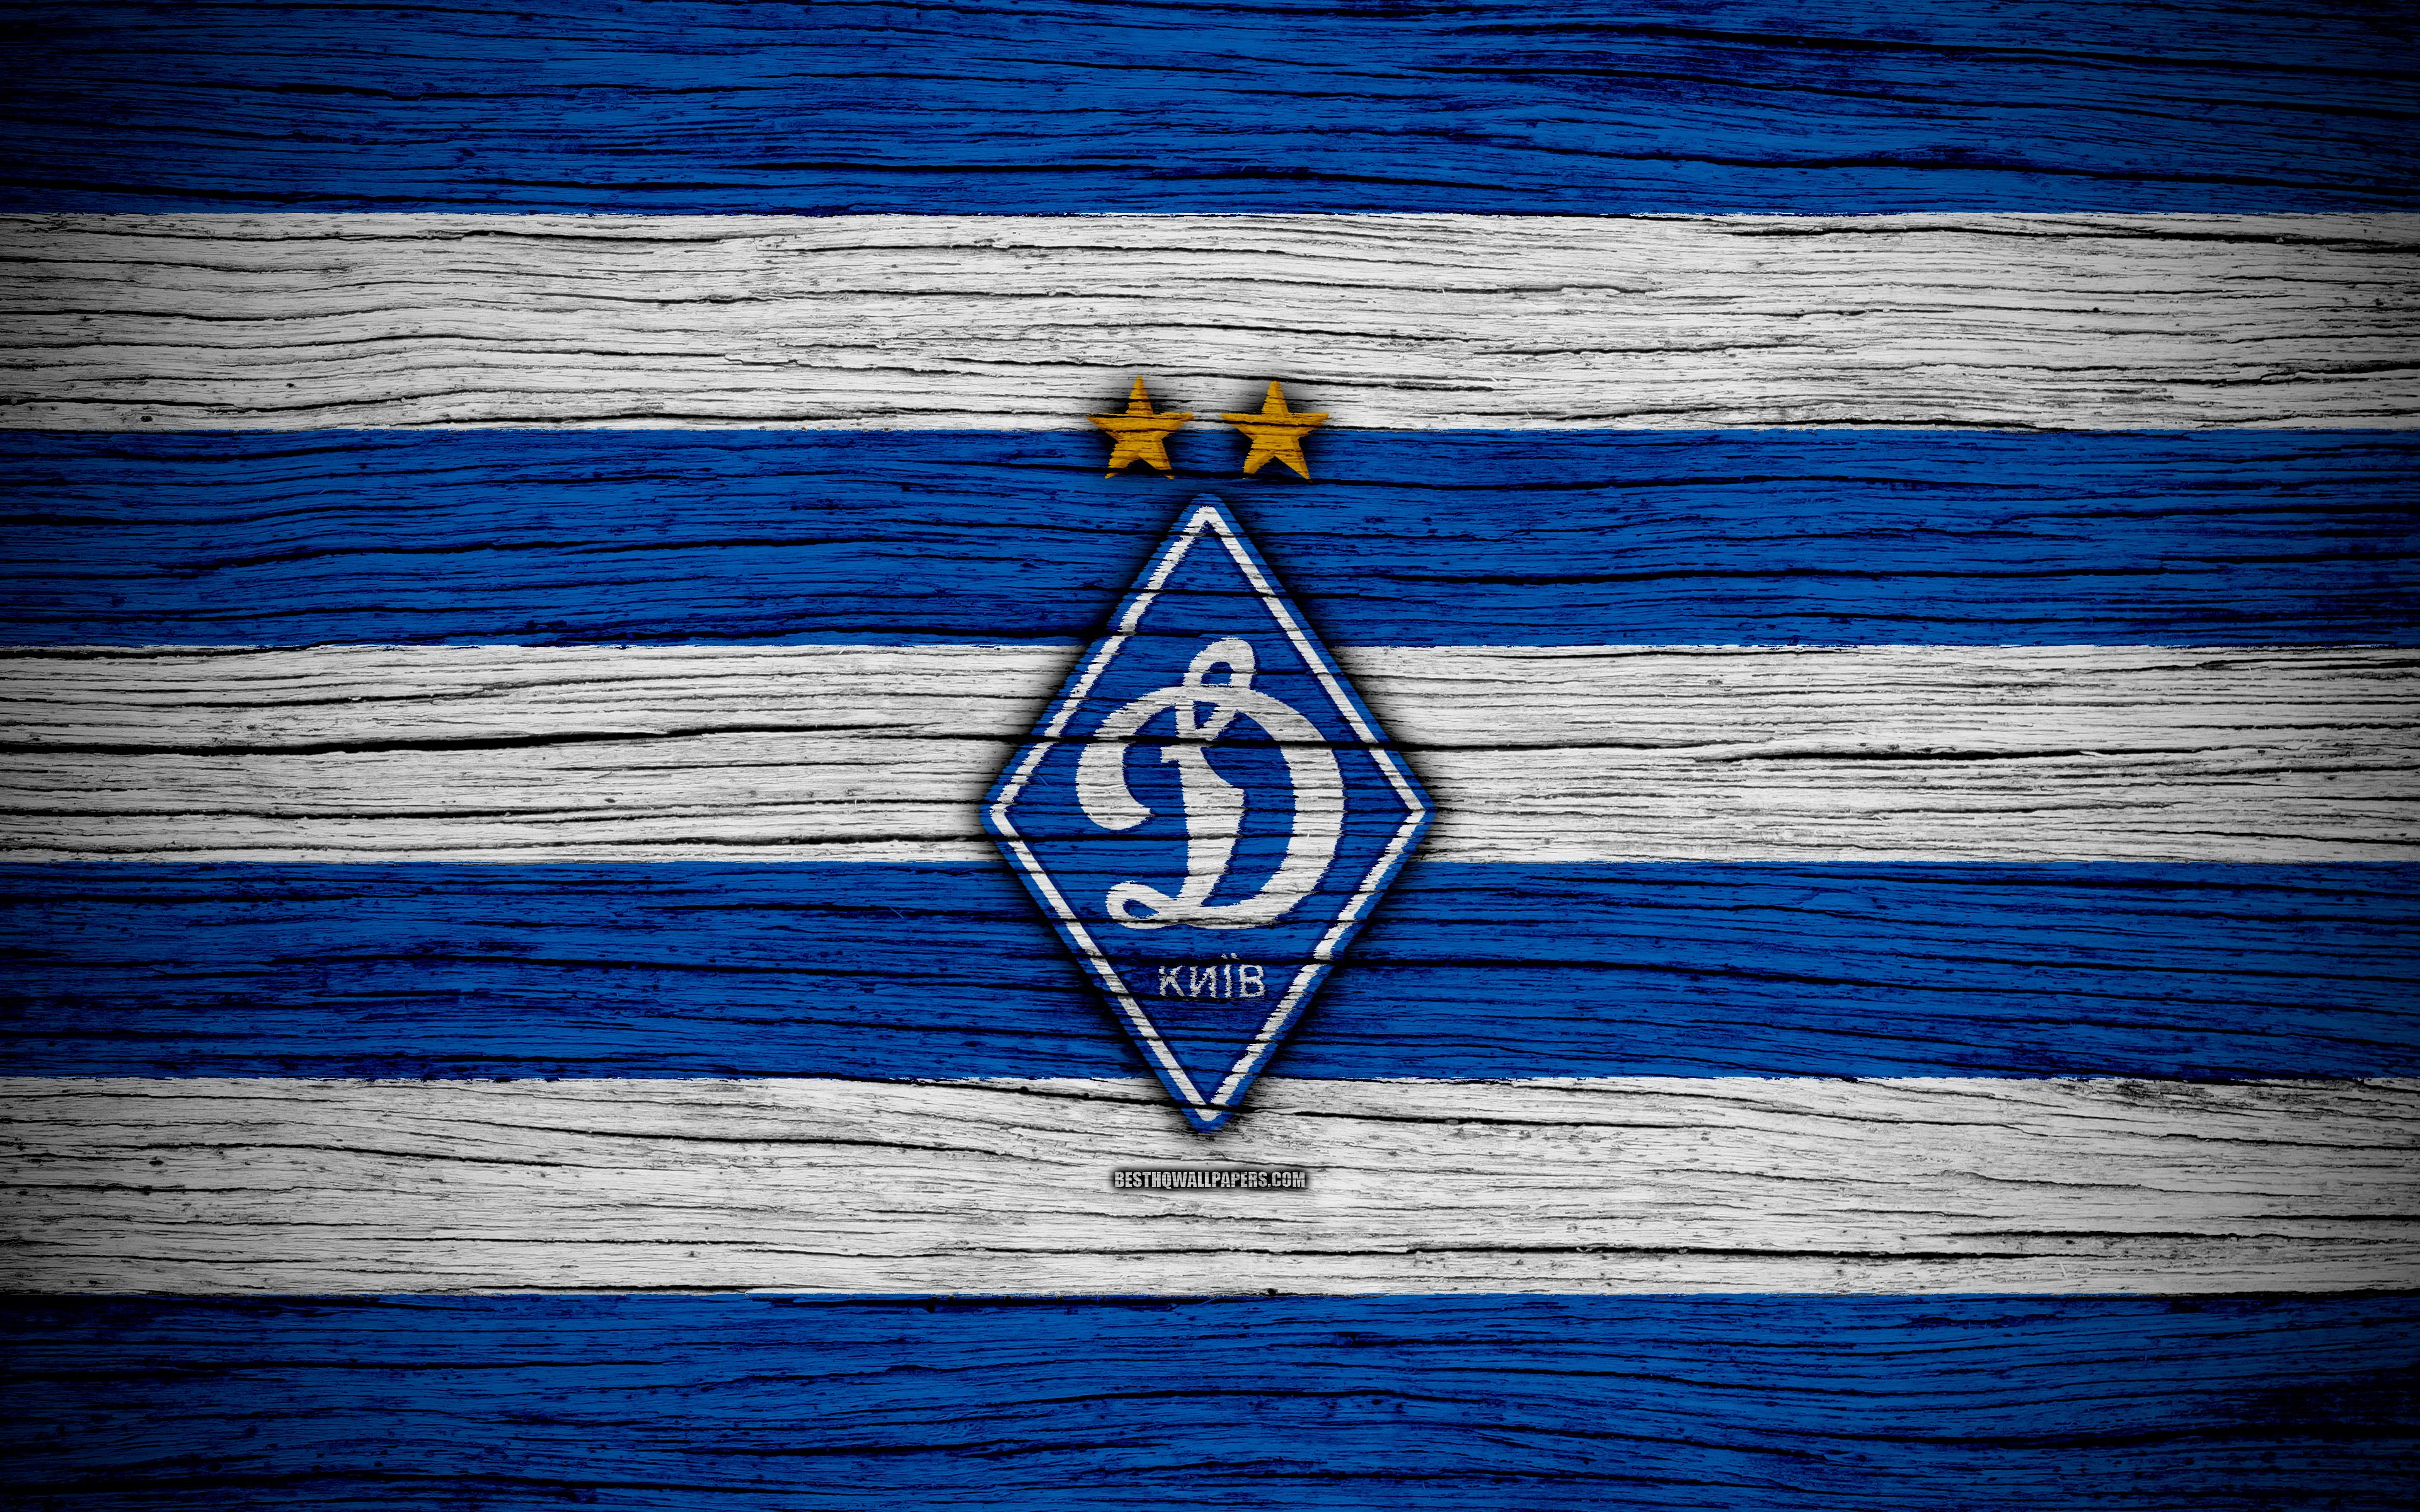 Download wallpapers Dynamo Kyiv FC, 4k, UPL, logo, soccer, FCDK